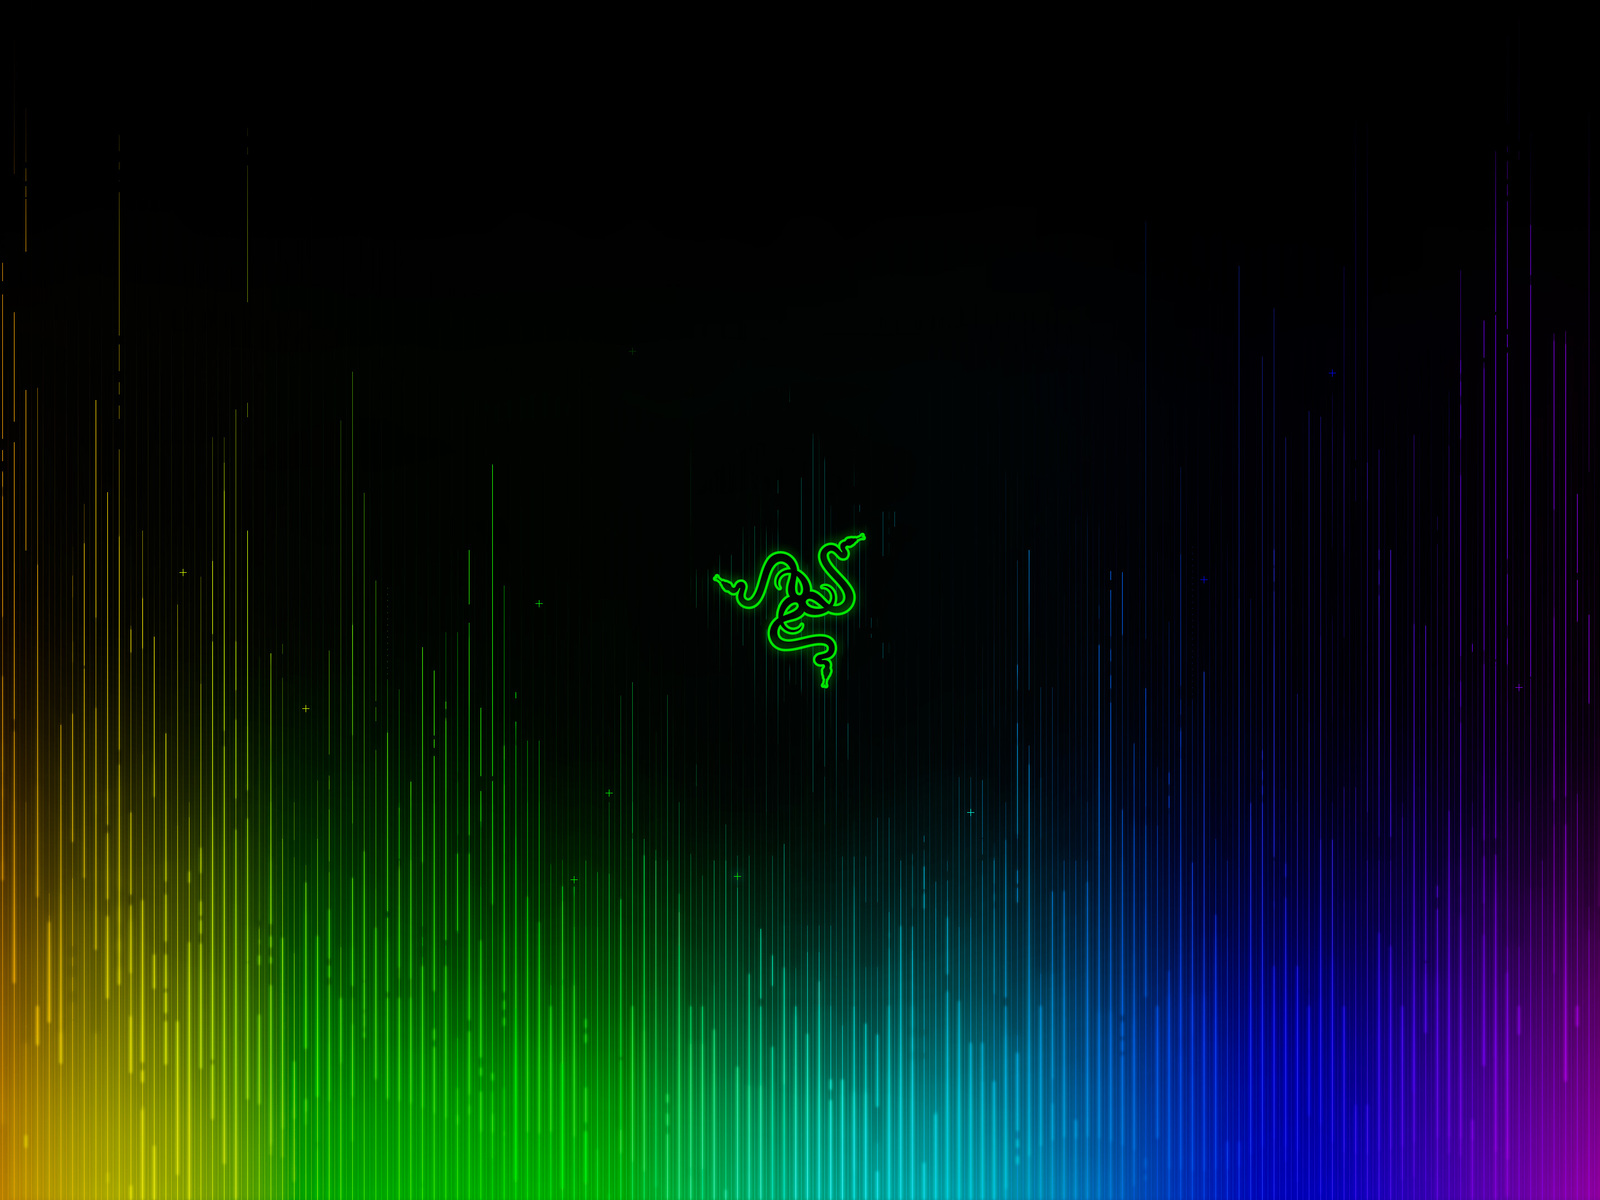 1600x1200 razer 4k 1600x1200 resolution hd 4k wallpapers, images